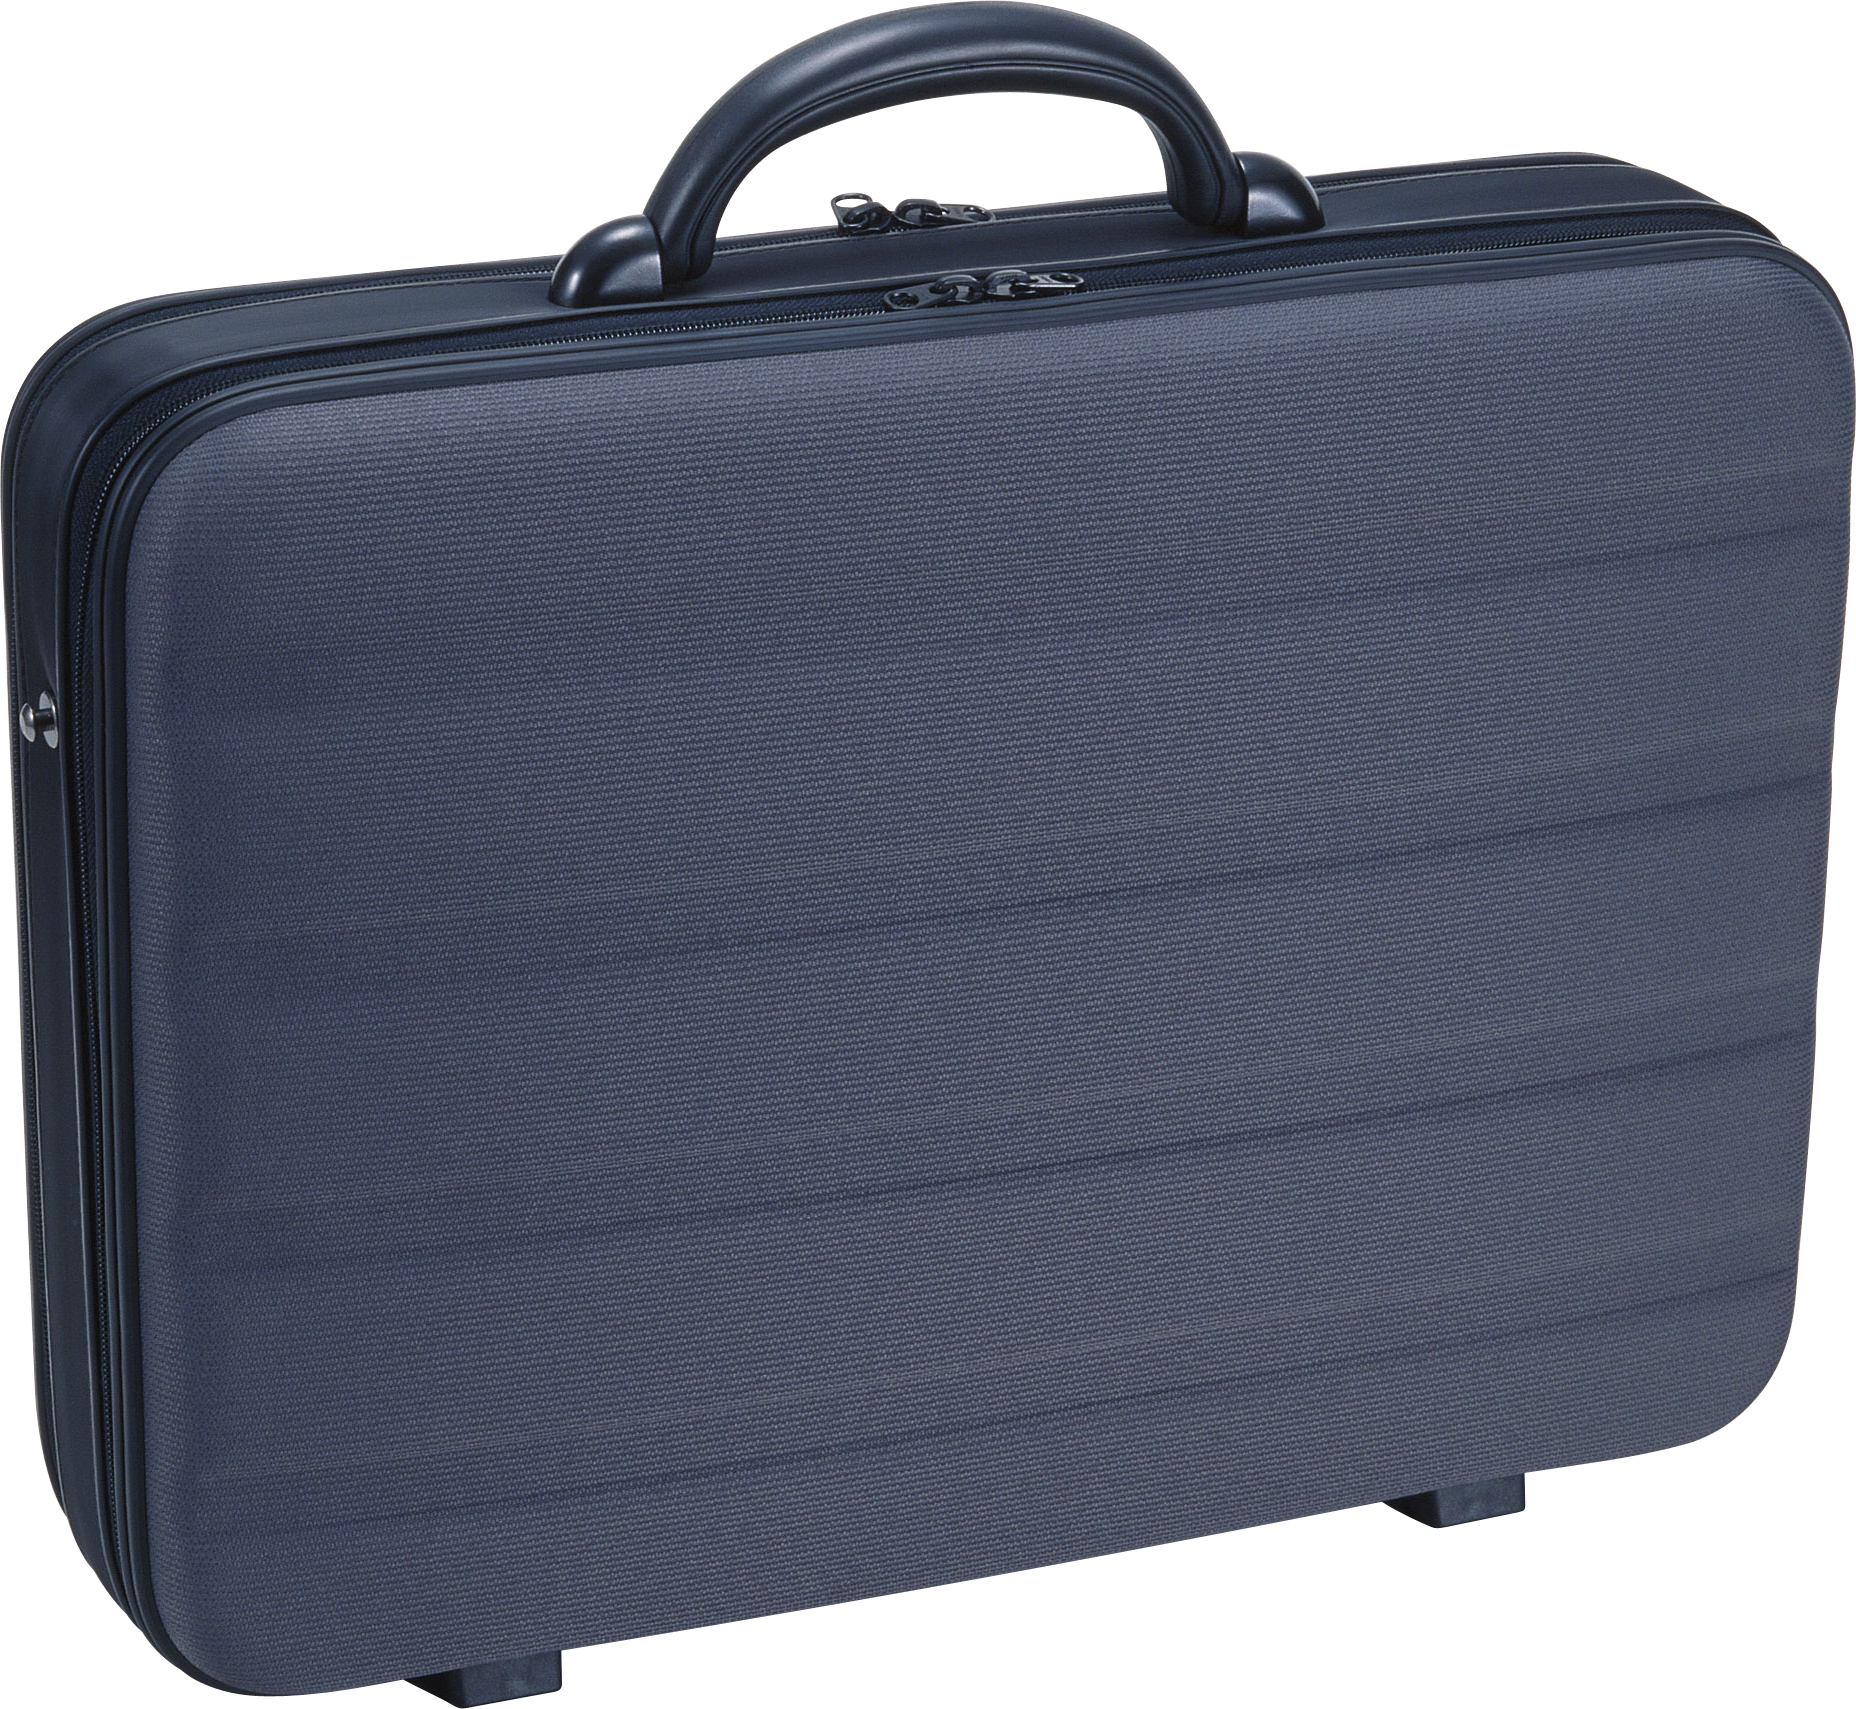 Luggage clipart suitcase handle. Png images free download